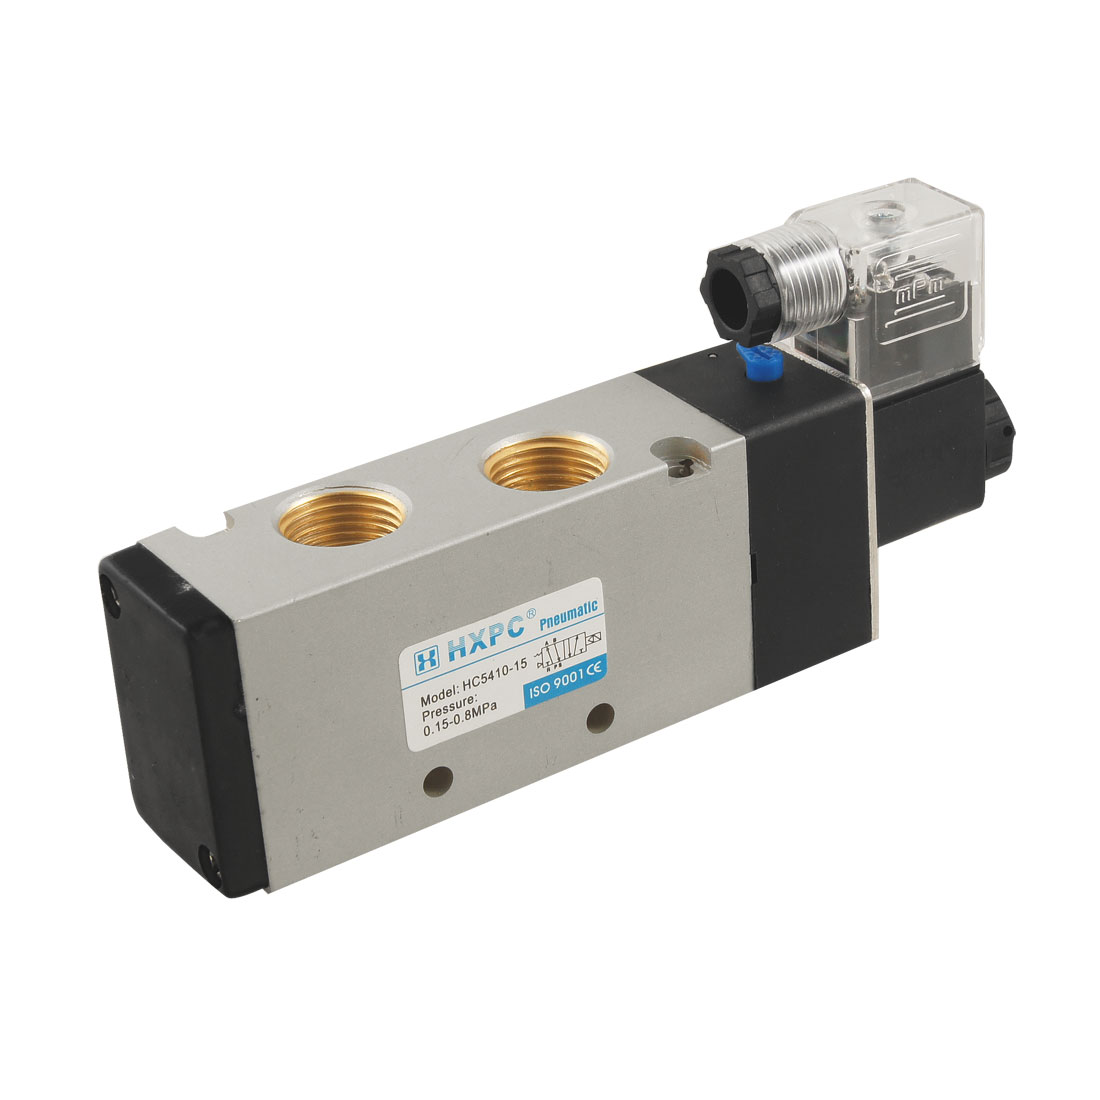 HC5410-15 AC 220V 50mA 2 Position 5 Way Pneumatic Solenoid Valve